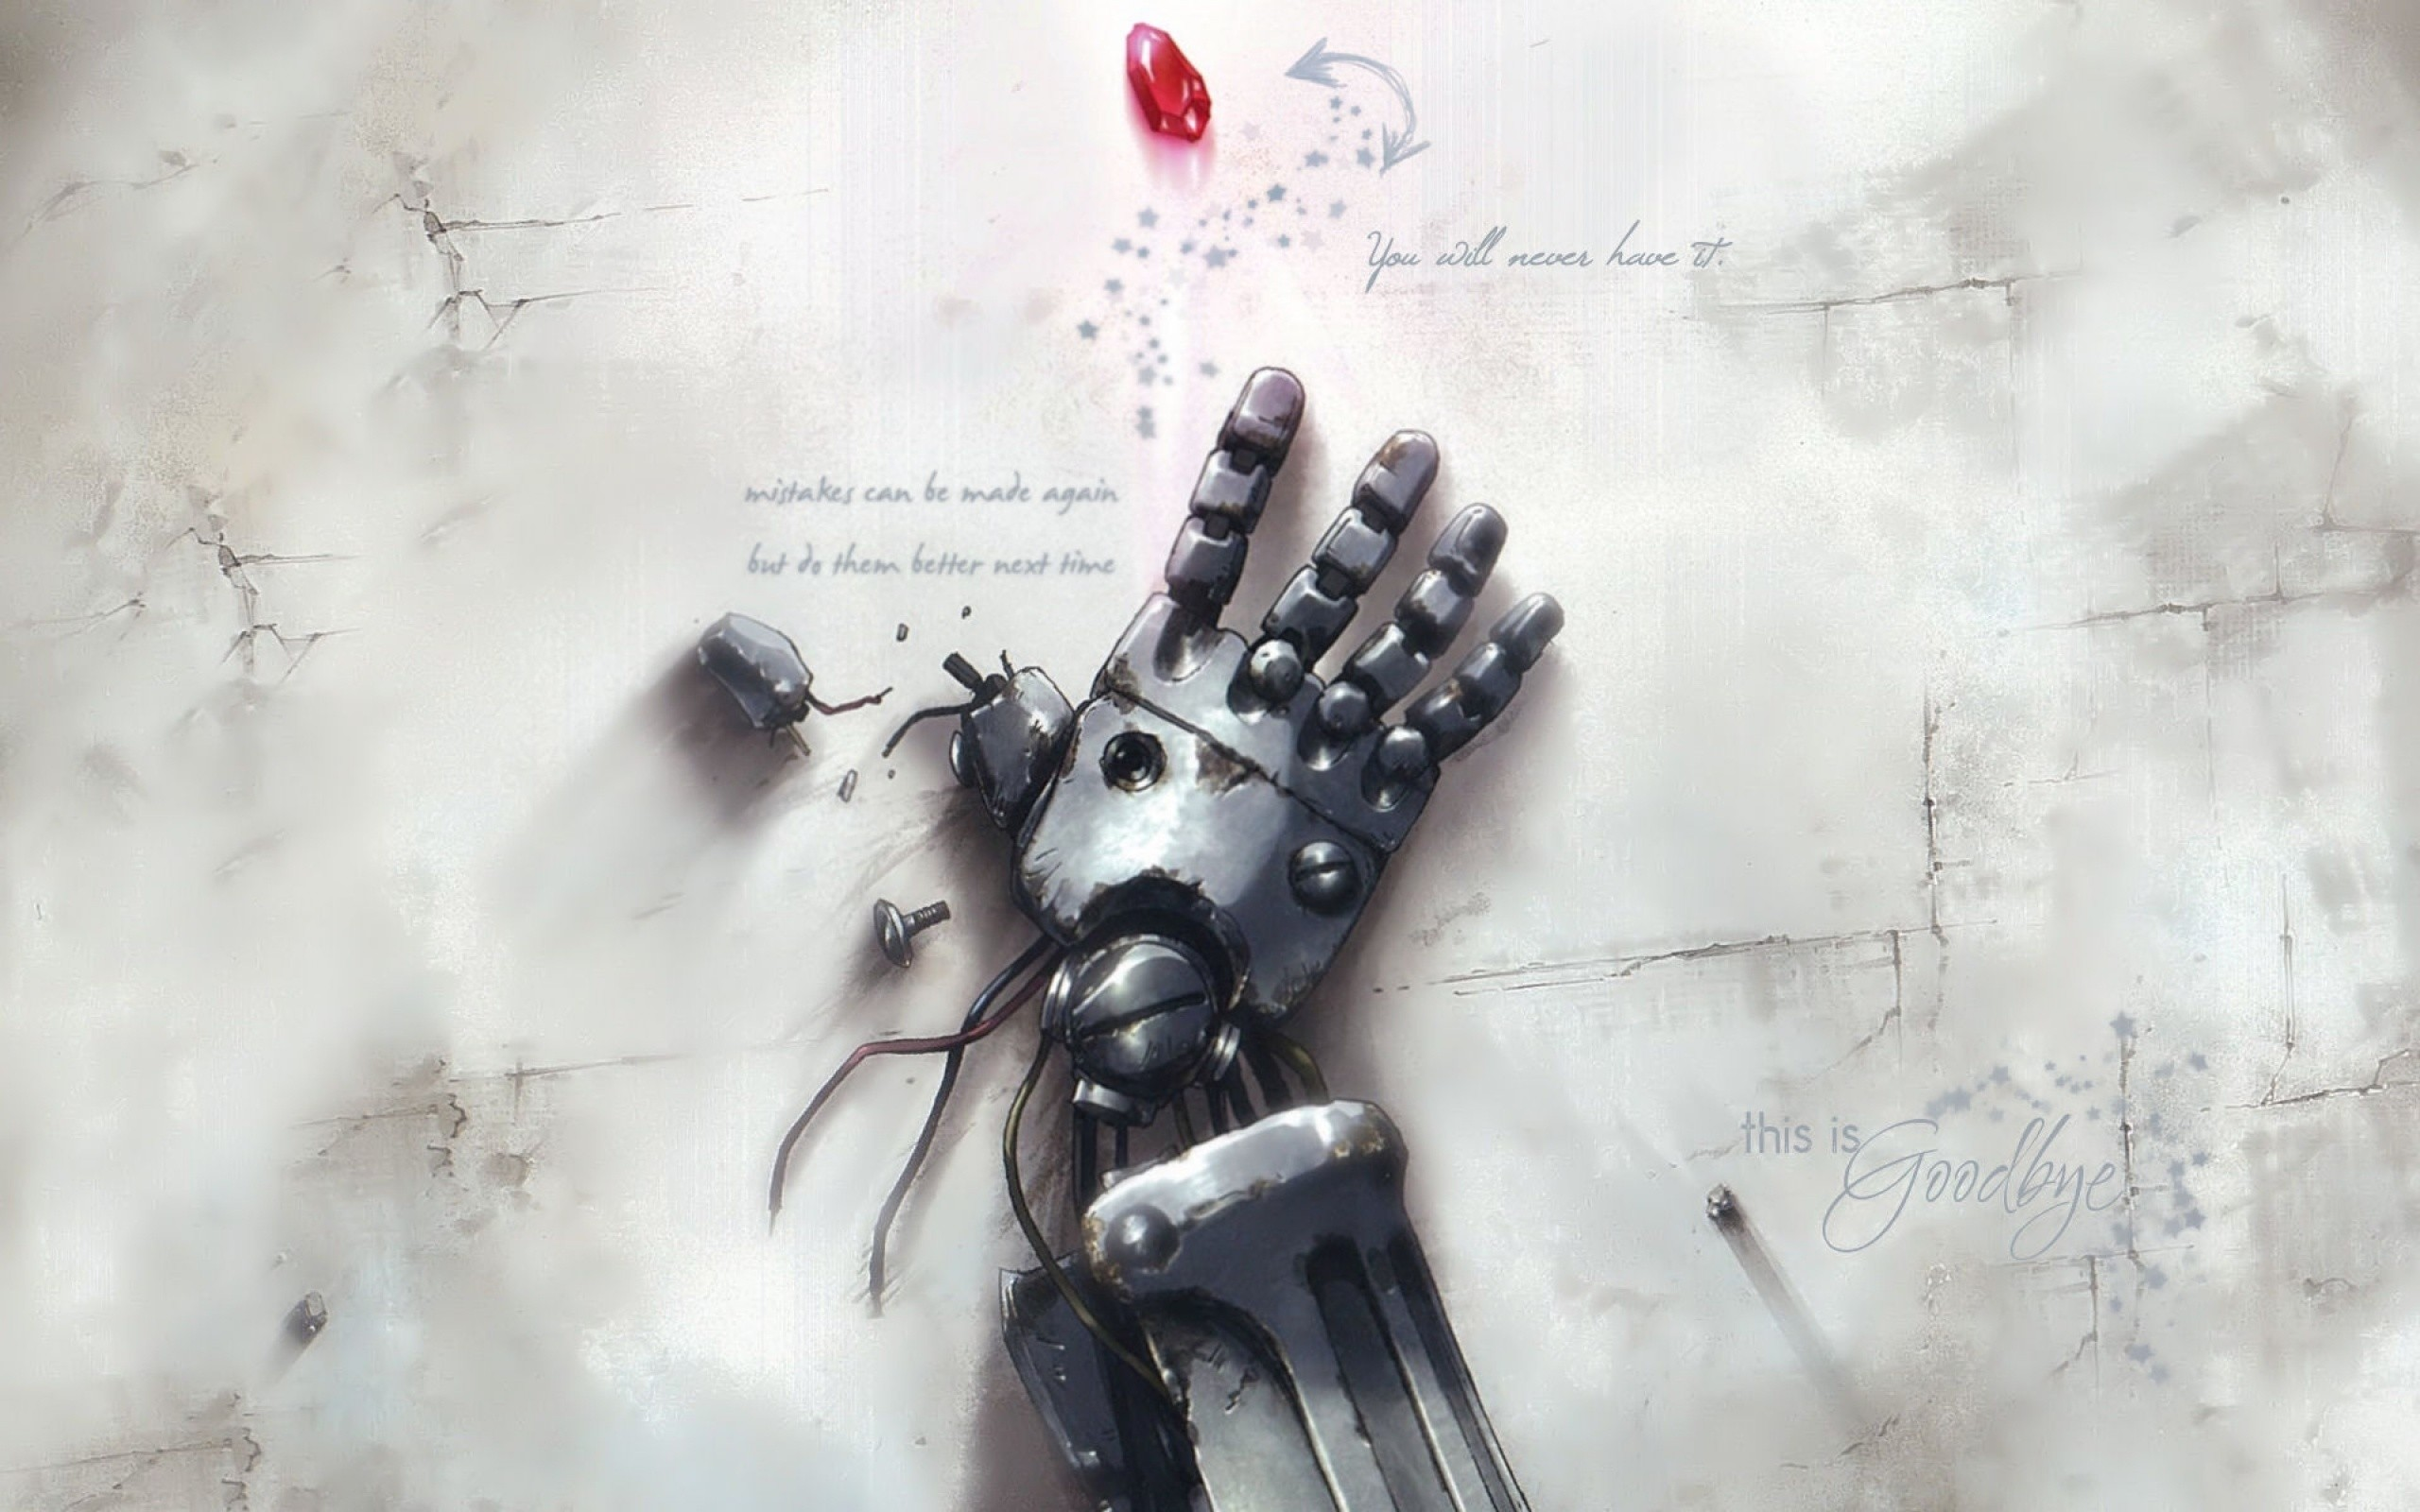 2560x1600 FullMetal Alchemist HD Wallpaper | Hintergrund |  | ID:111290 -  Wallpaper Abyss